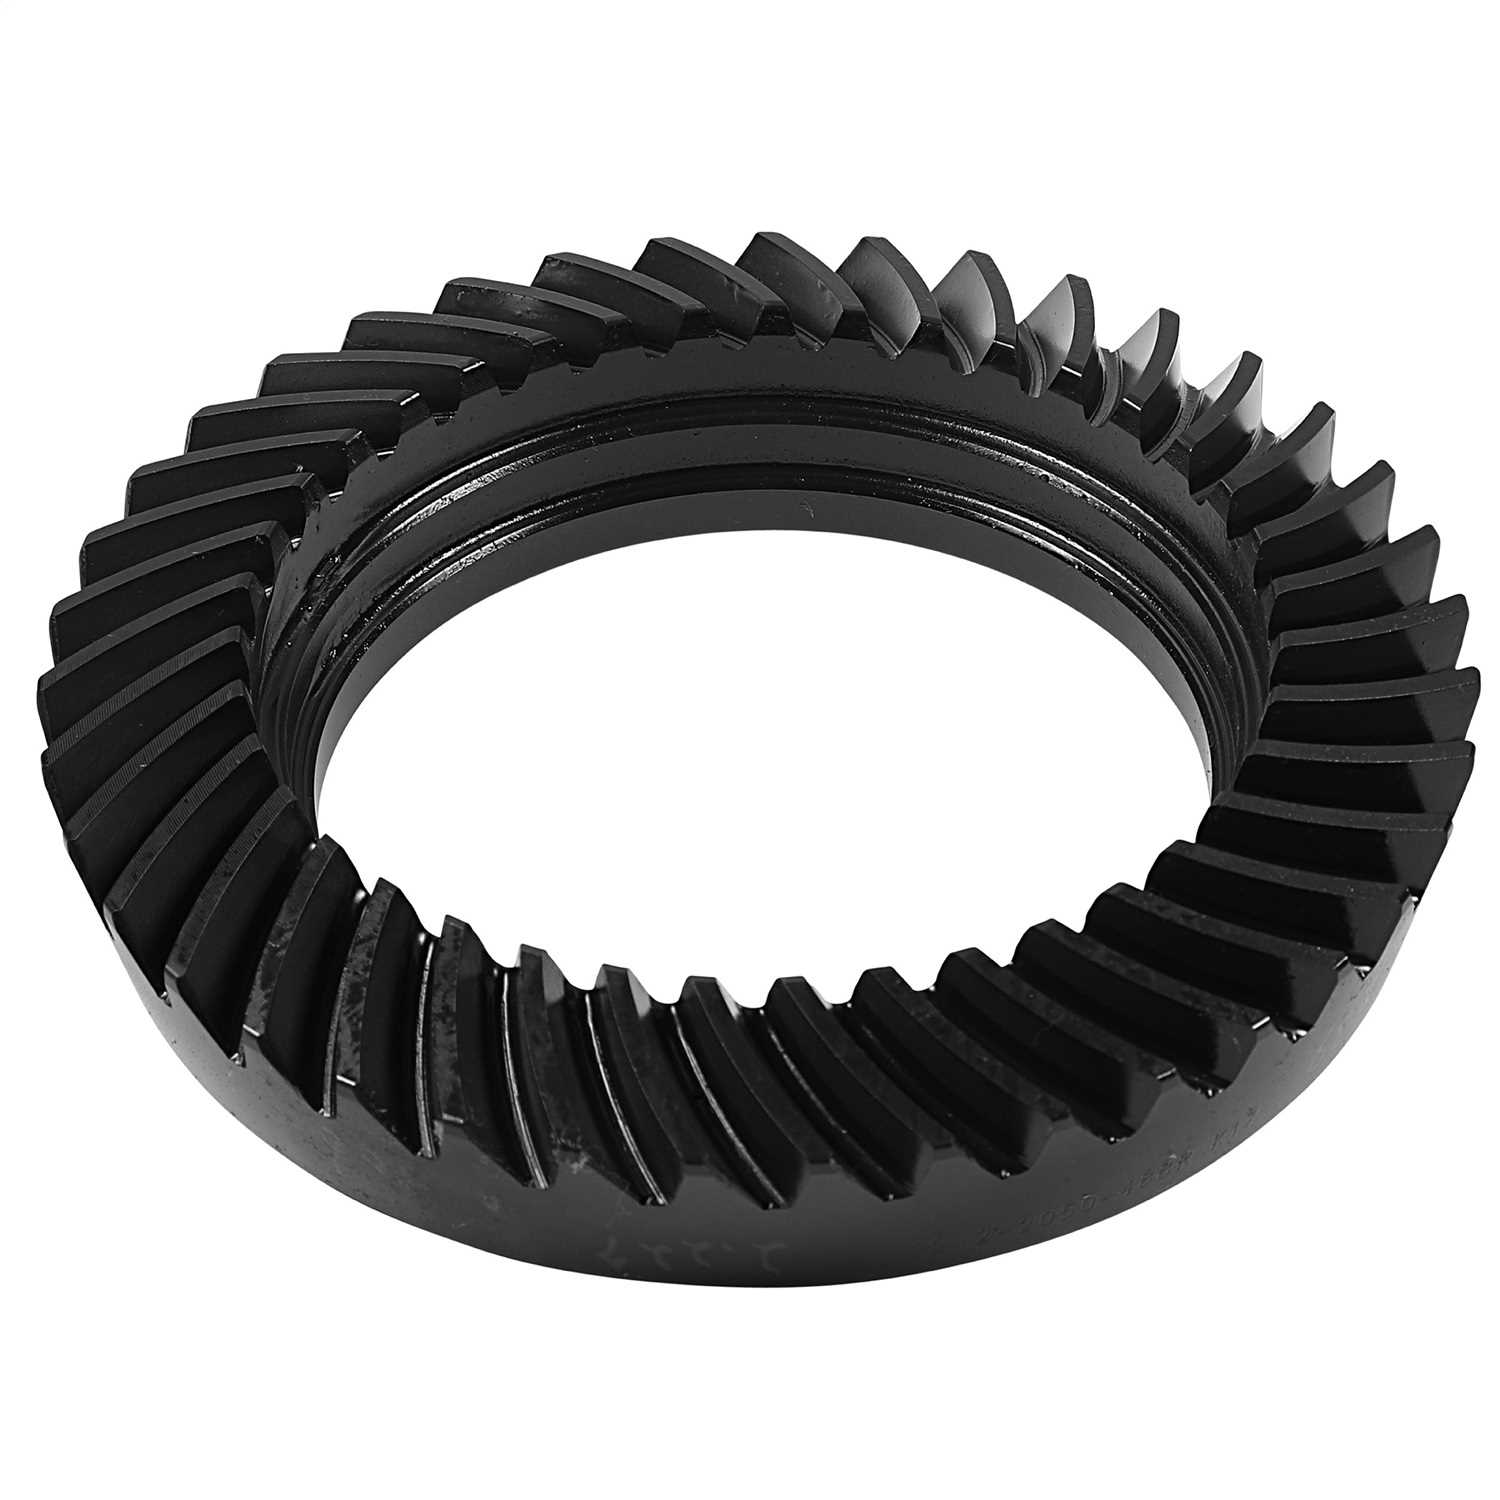 1-2152-373 G2 Axle and Gear Ring and Pinion Set